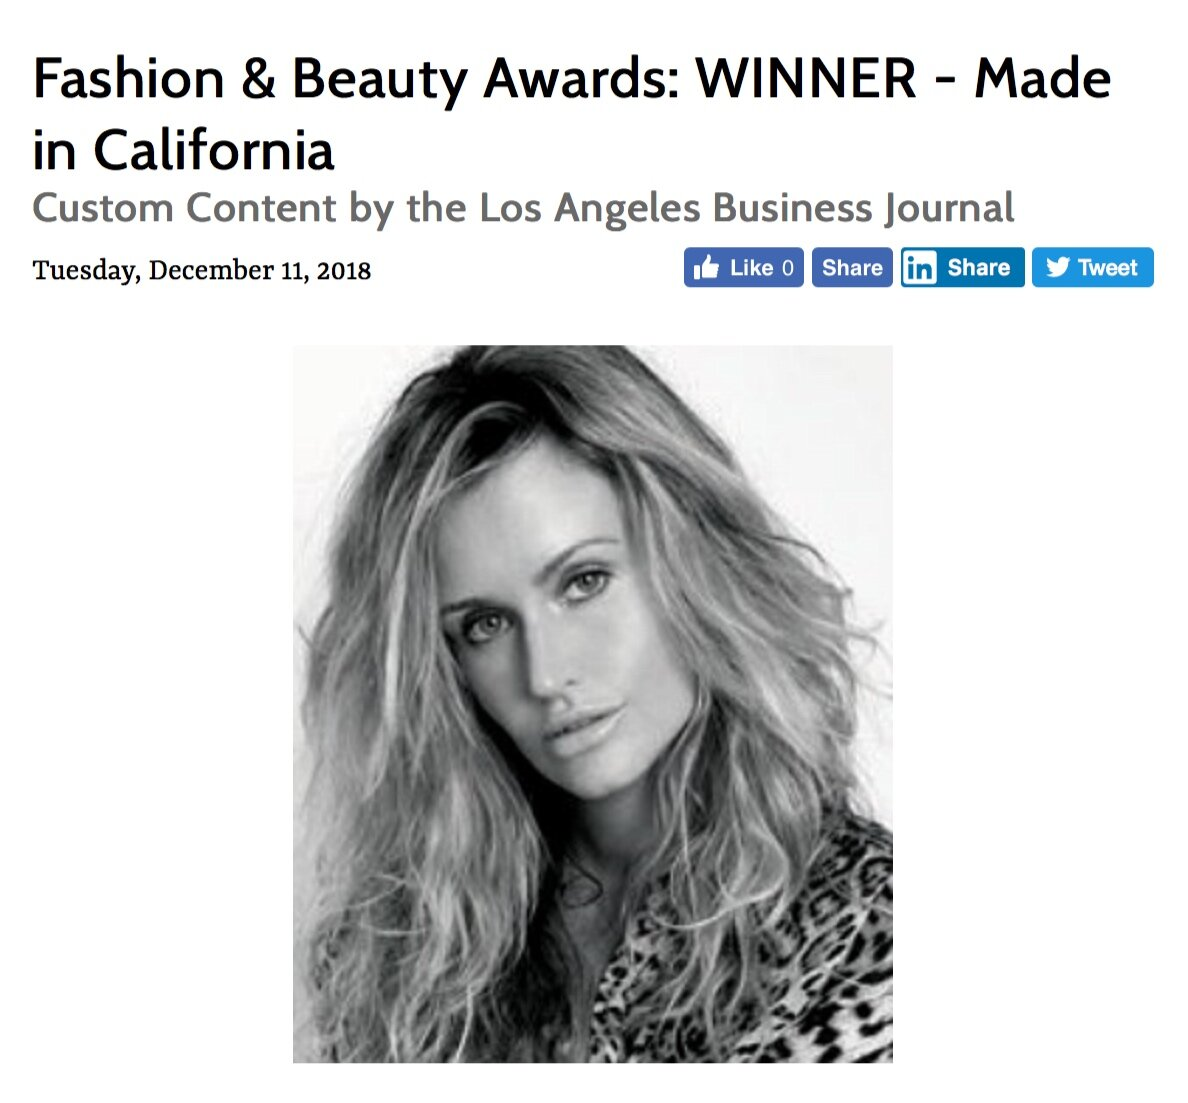 THE LOS ANGELES BUSINESS JOURNAL AWARDED SAGE LAROCK THE   'BEST MADE IN CALIFORNIA BRAND'  , NOMINATED BY  PETA